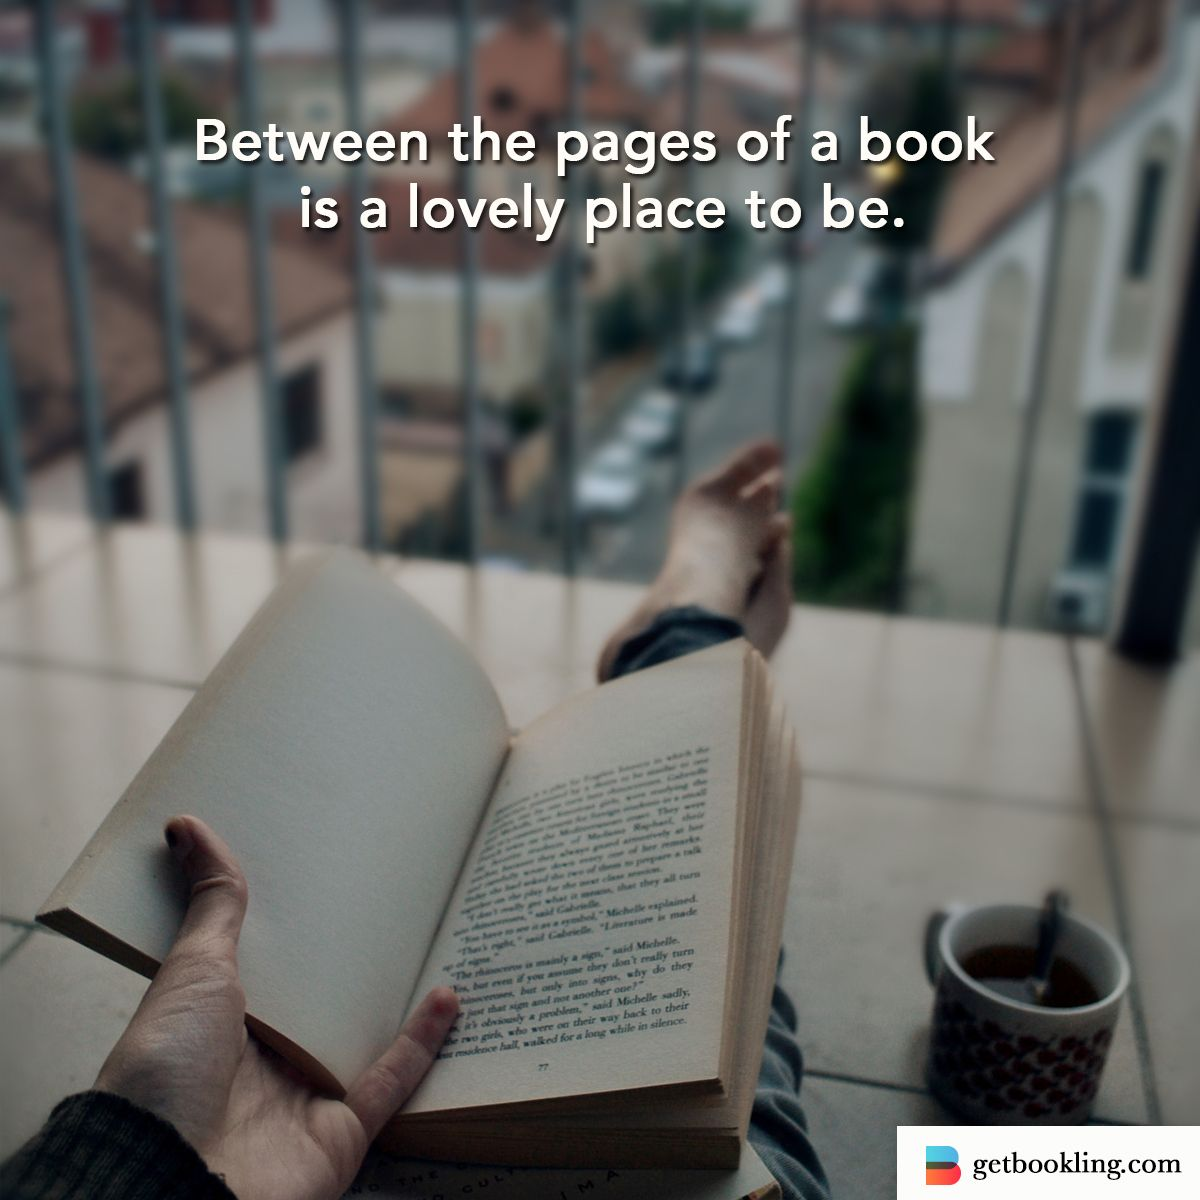 book lovers are here!